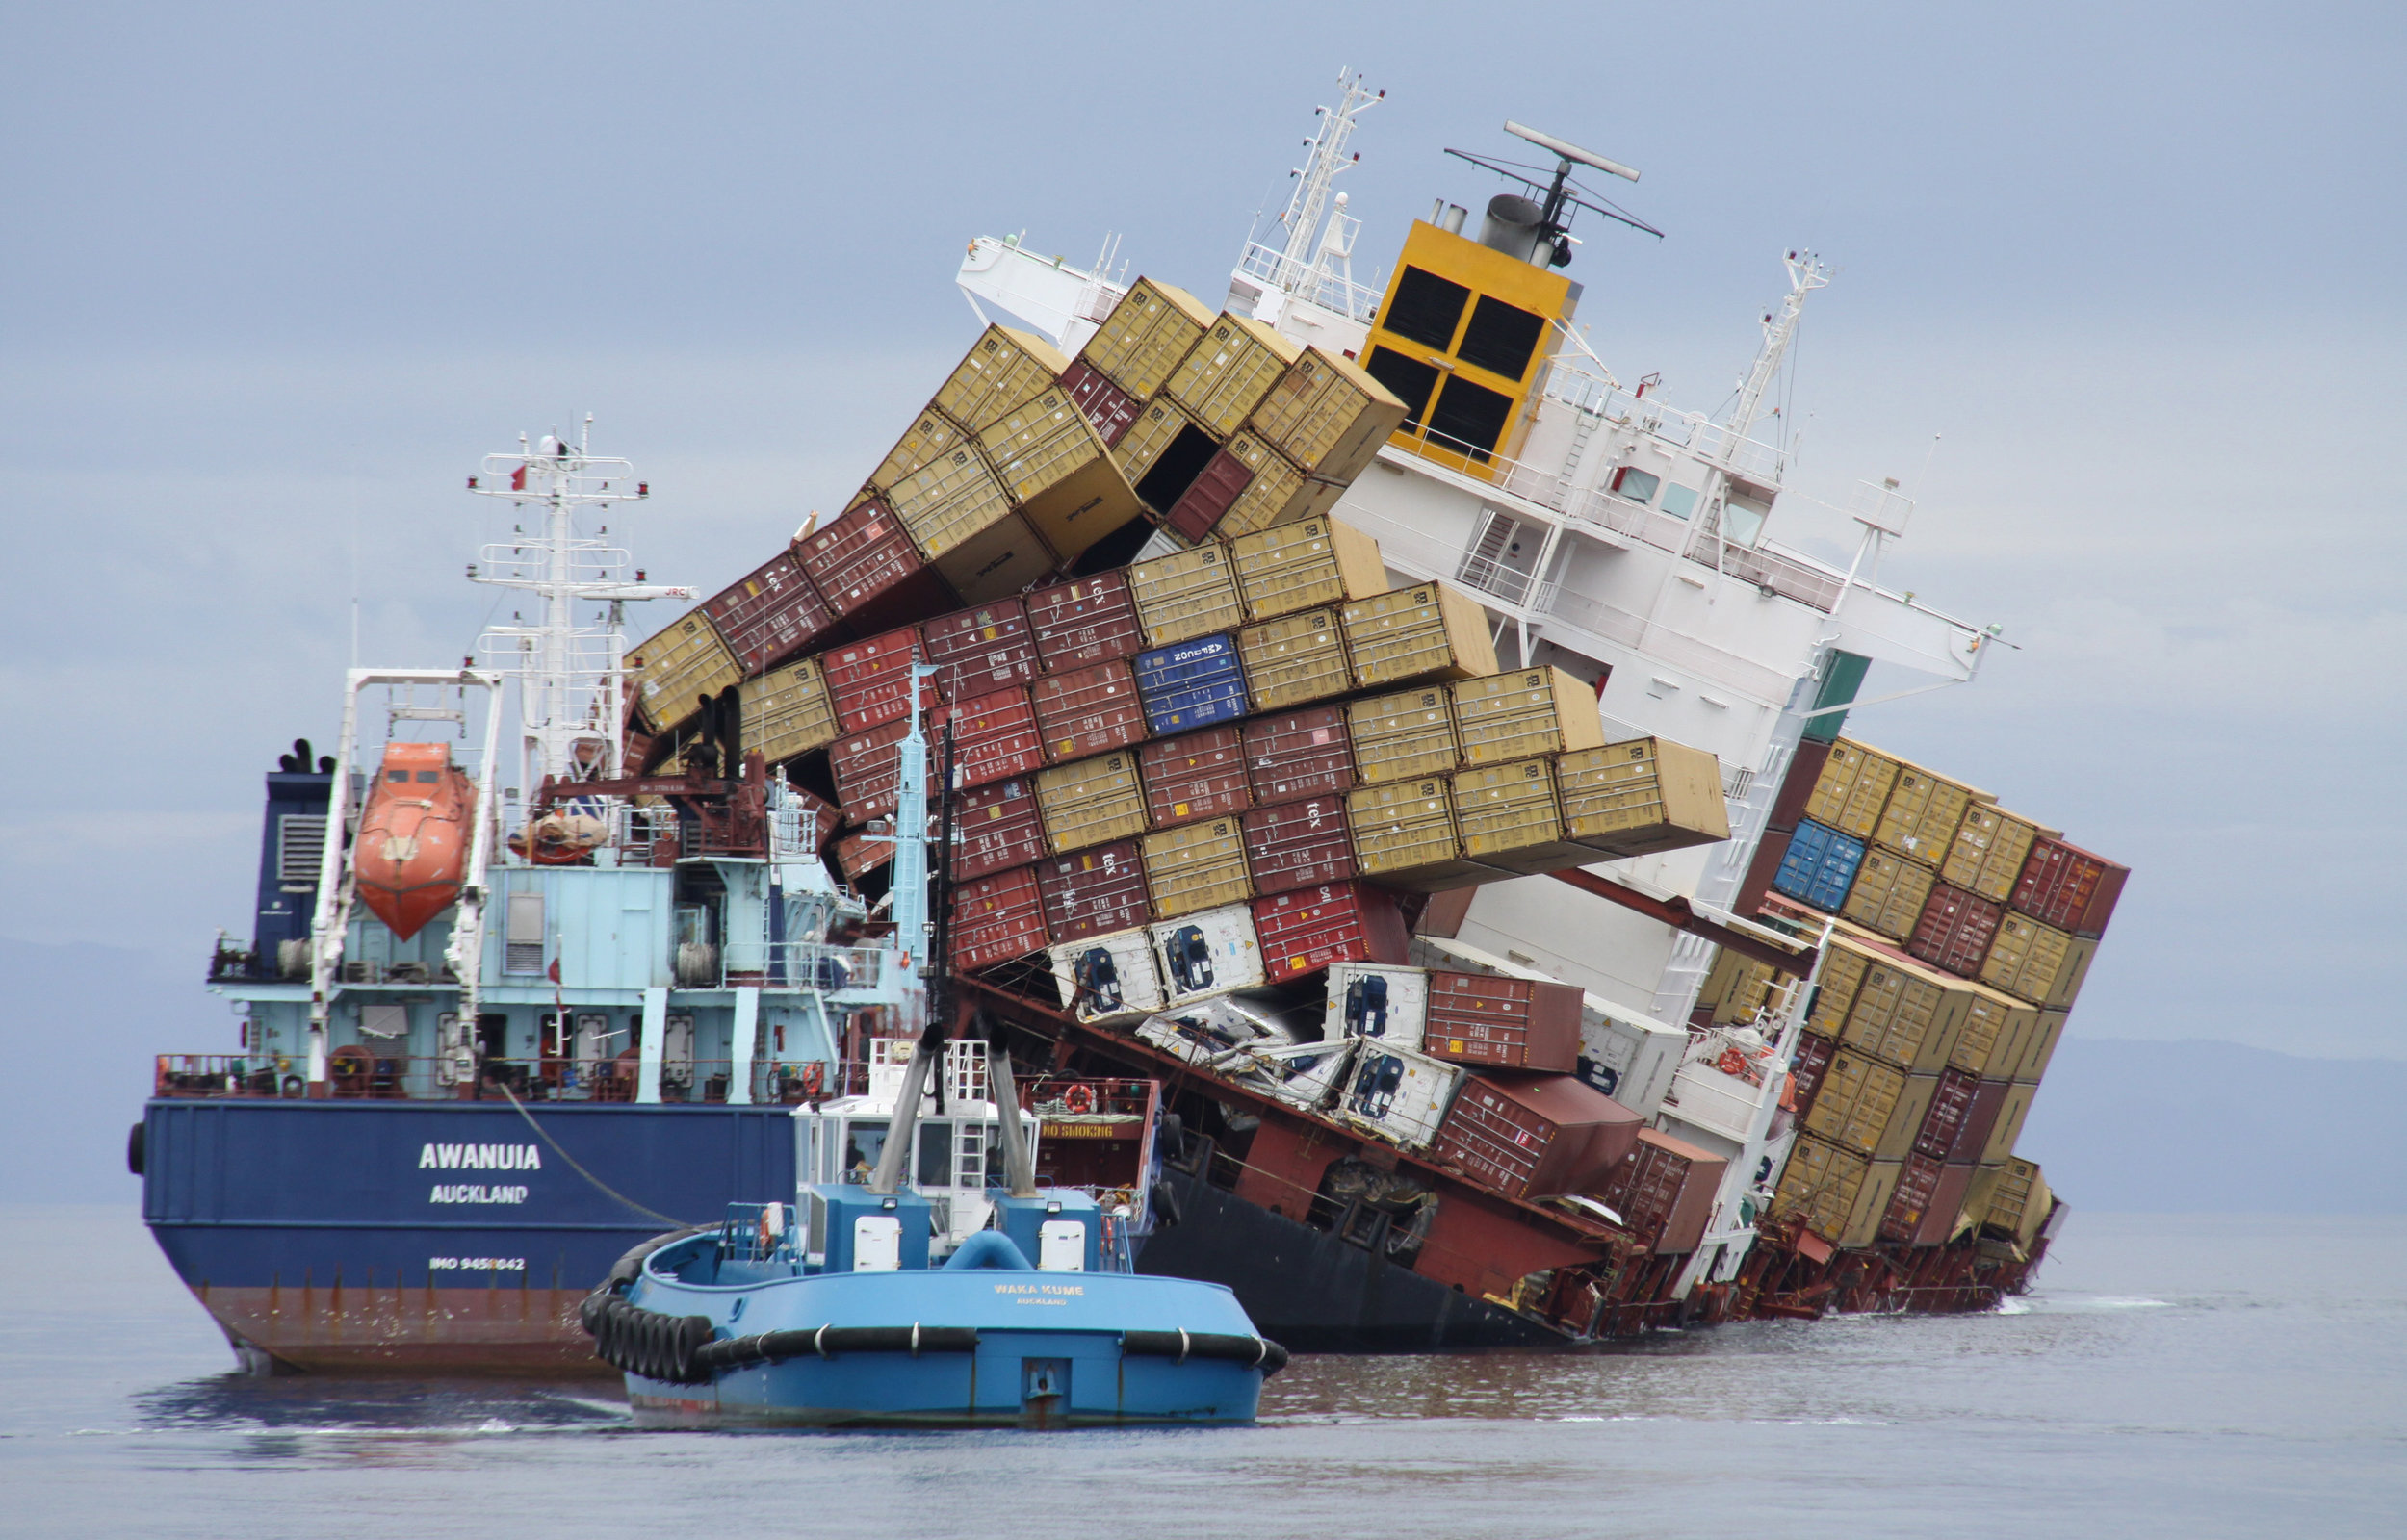 MV Rena was carrying over 1300 containers when she ran aground.   Image credit: Maritime New Zealand